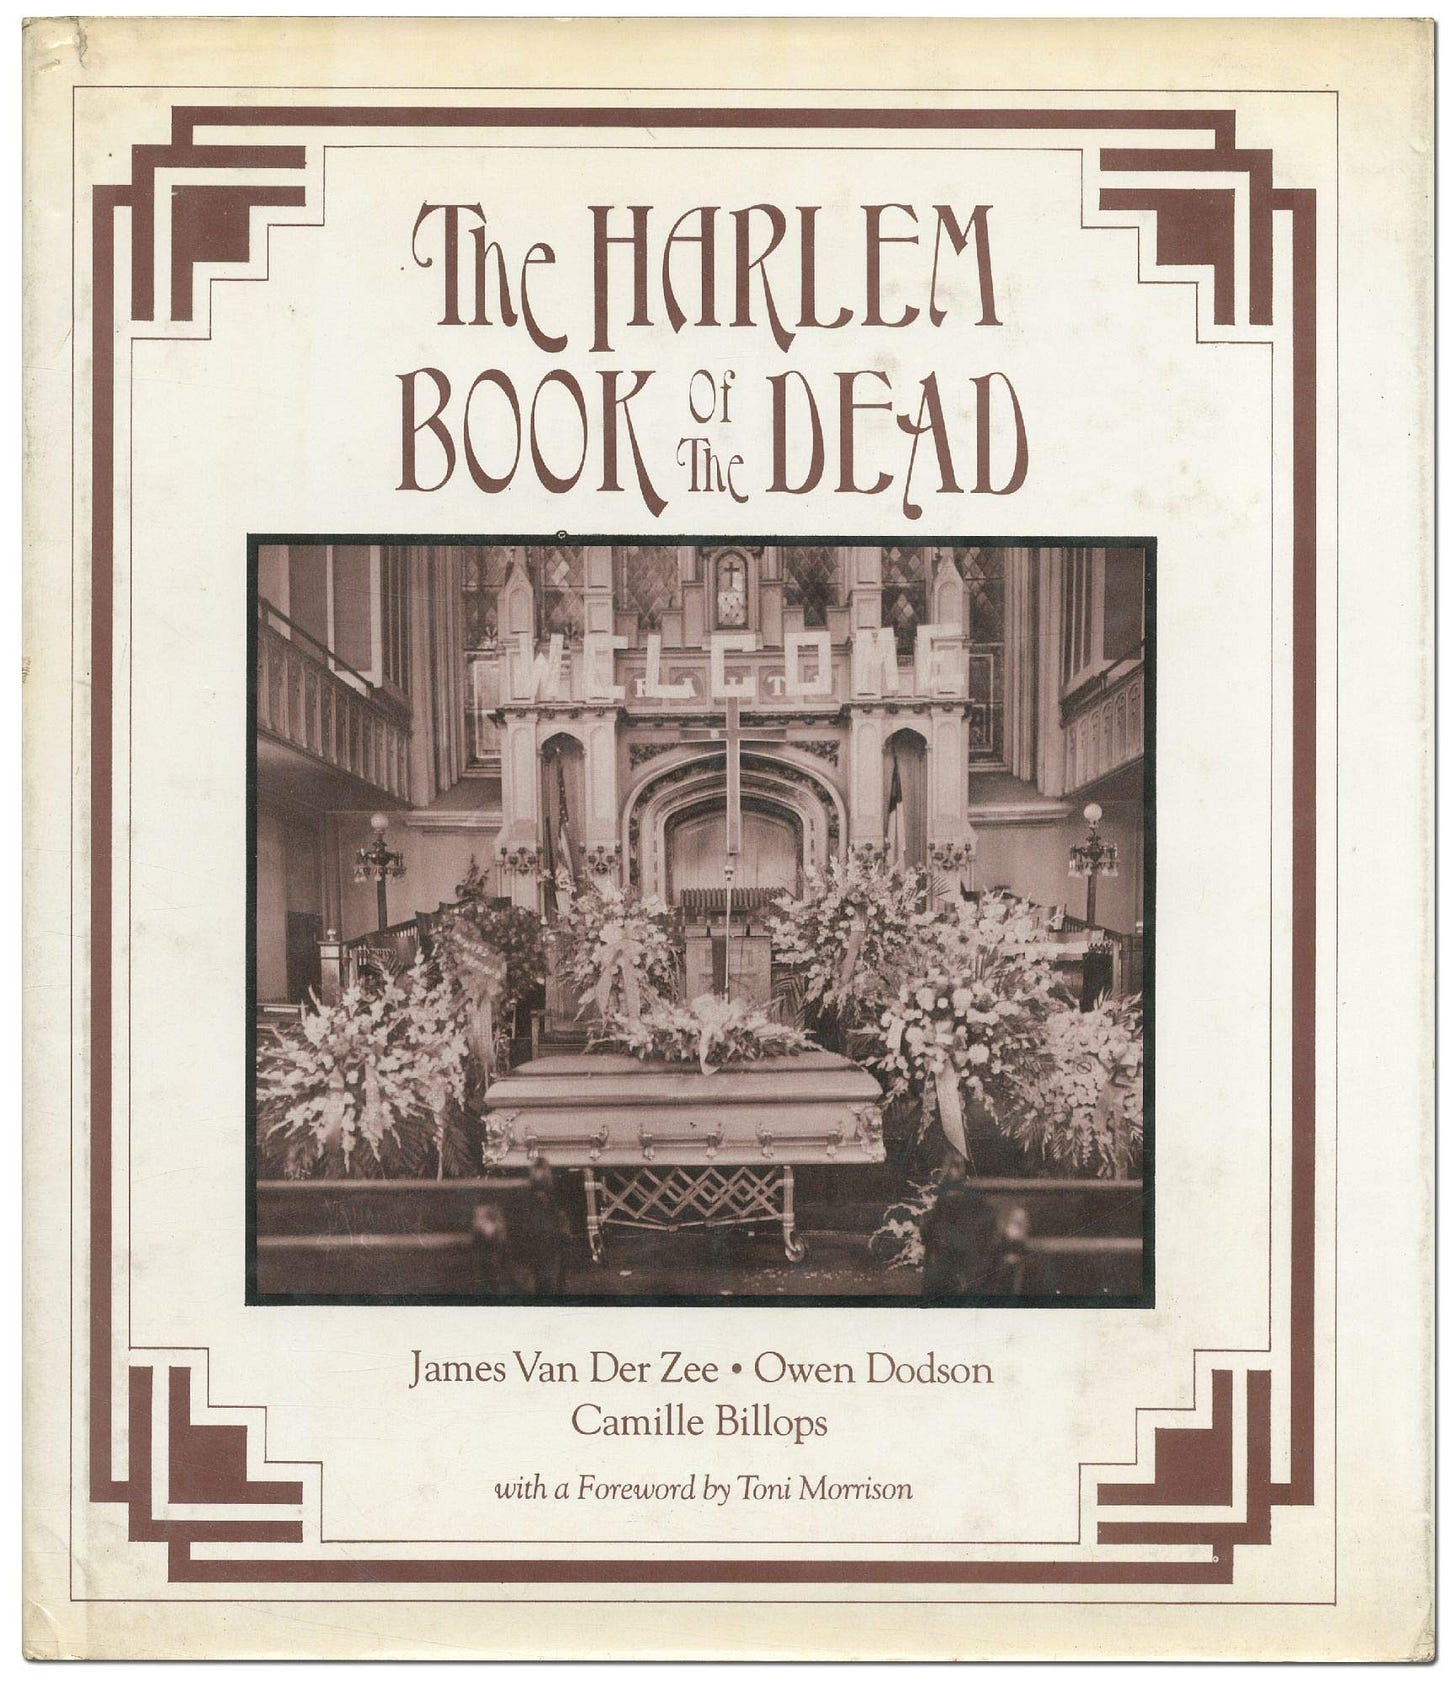 Image result for Harlem Book of the Dead""